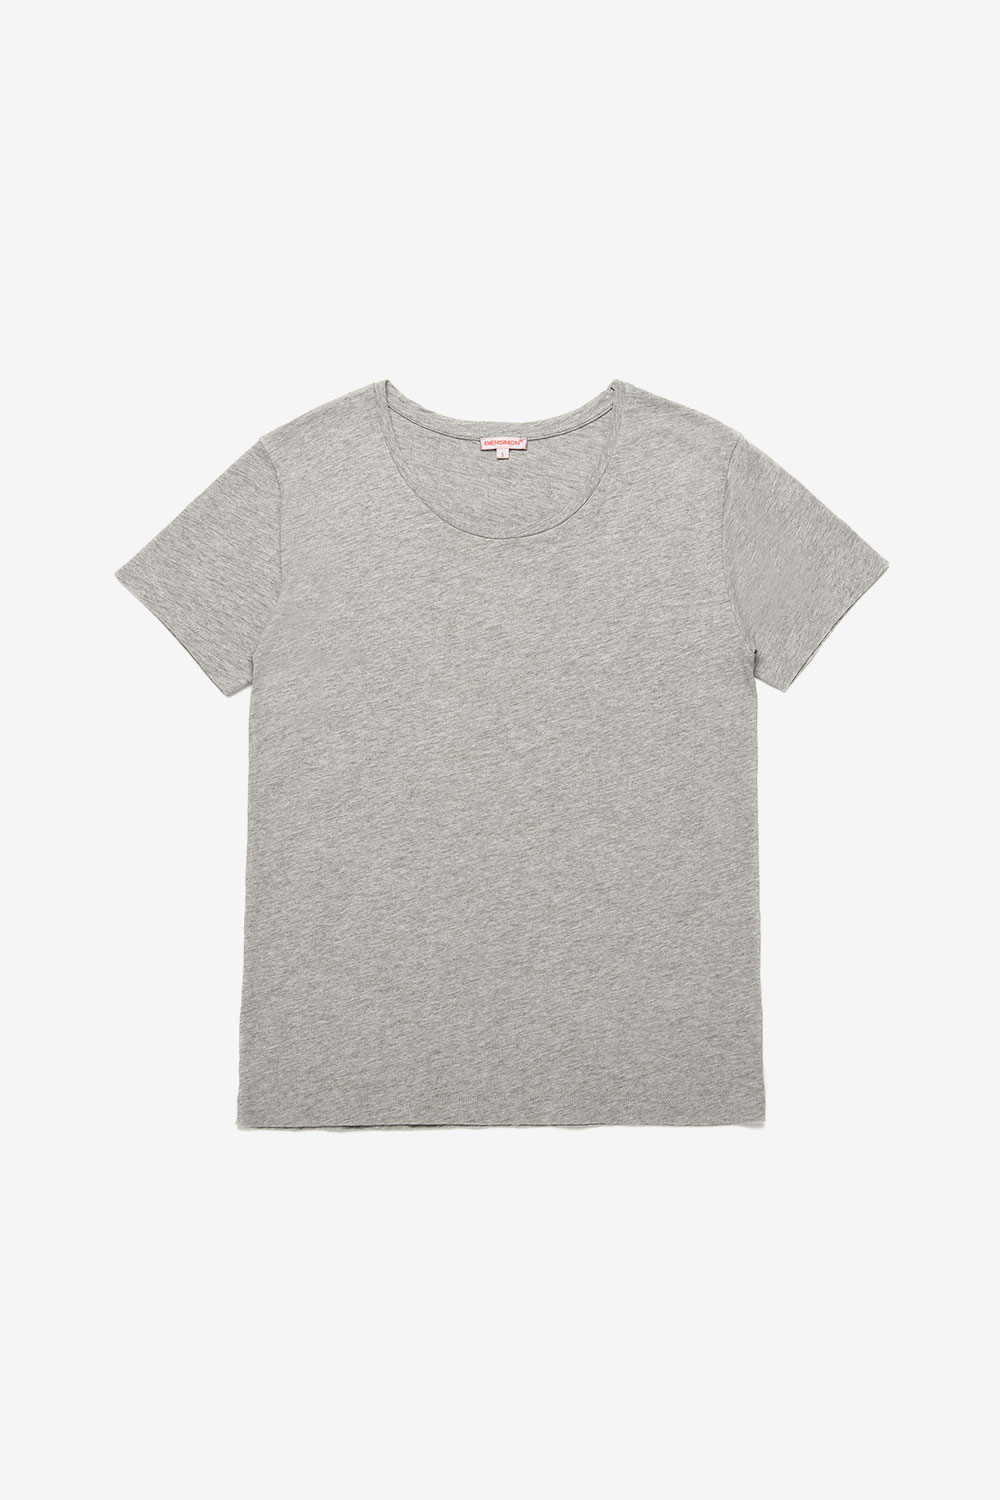 Tee Shirt Pernille_Grey BS0STS101GR